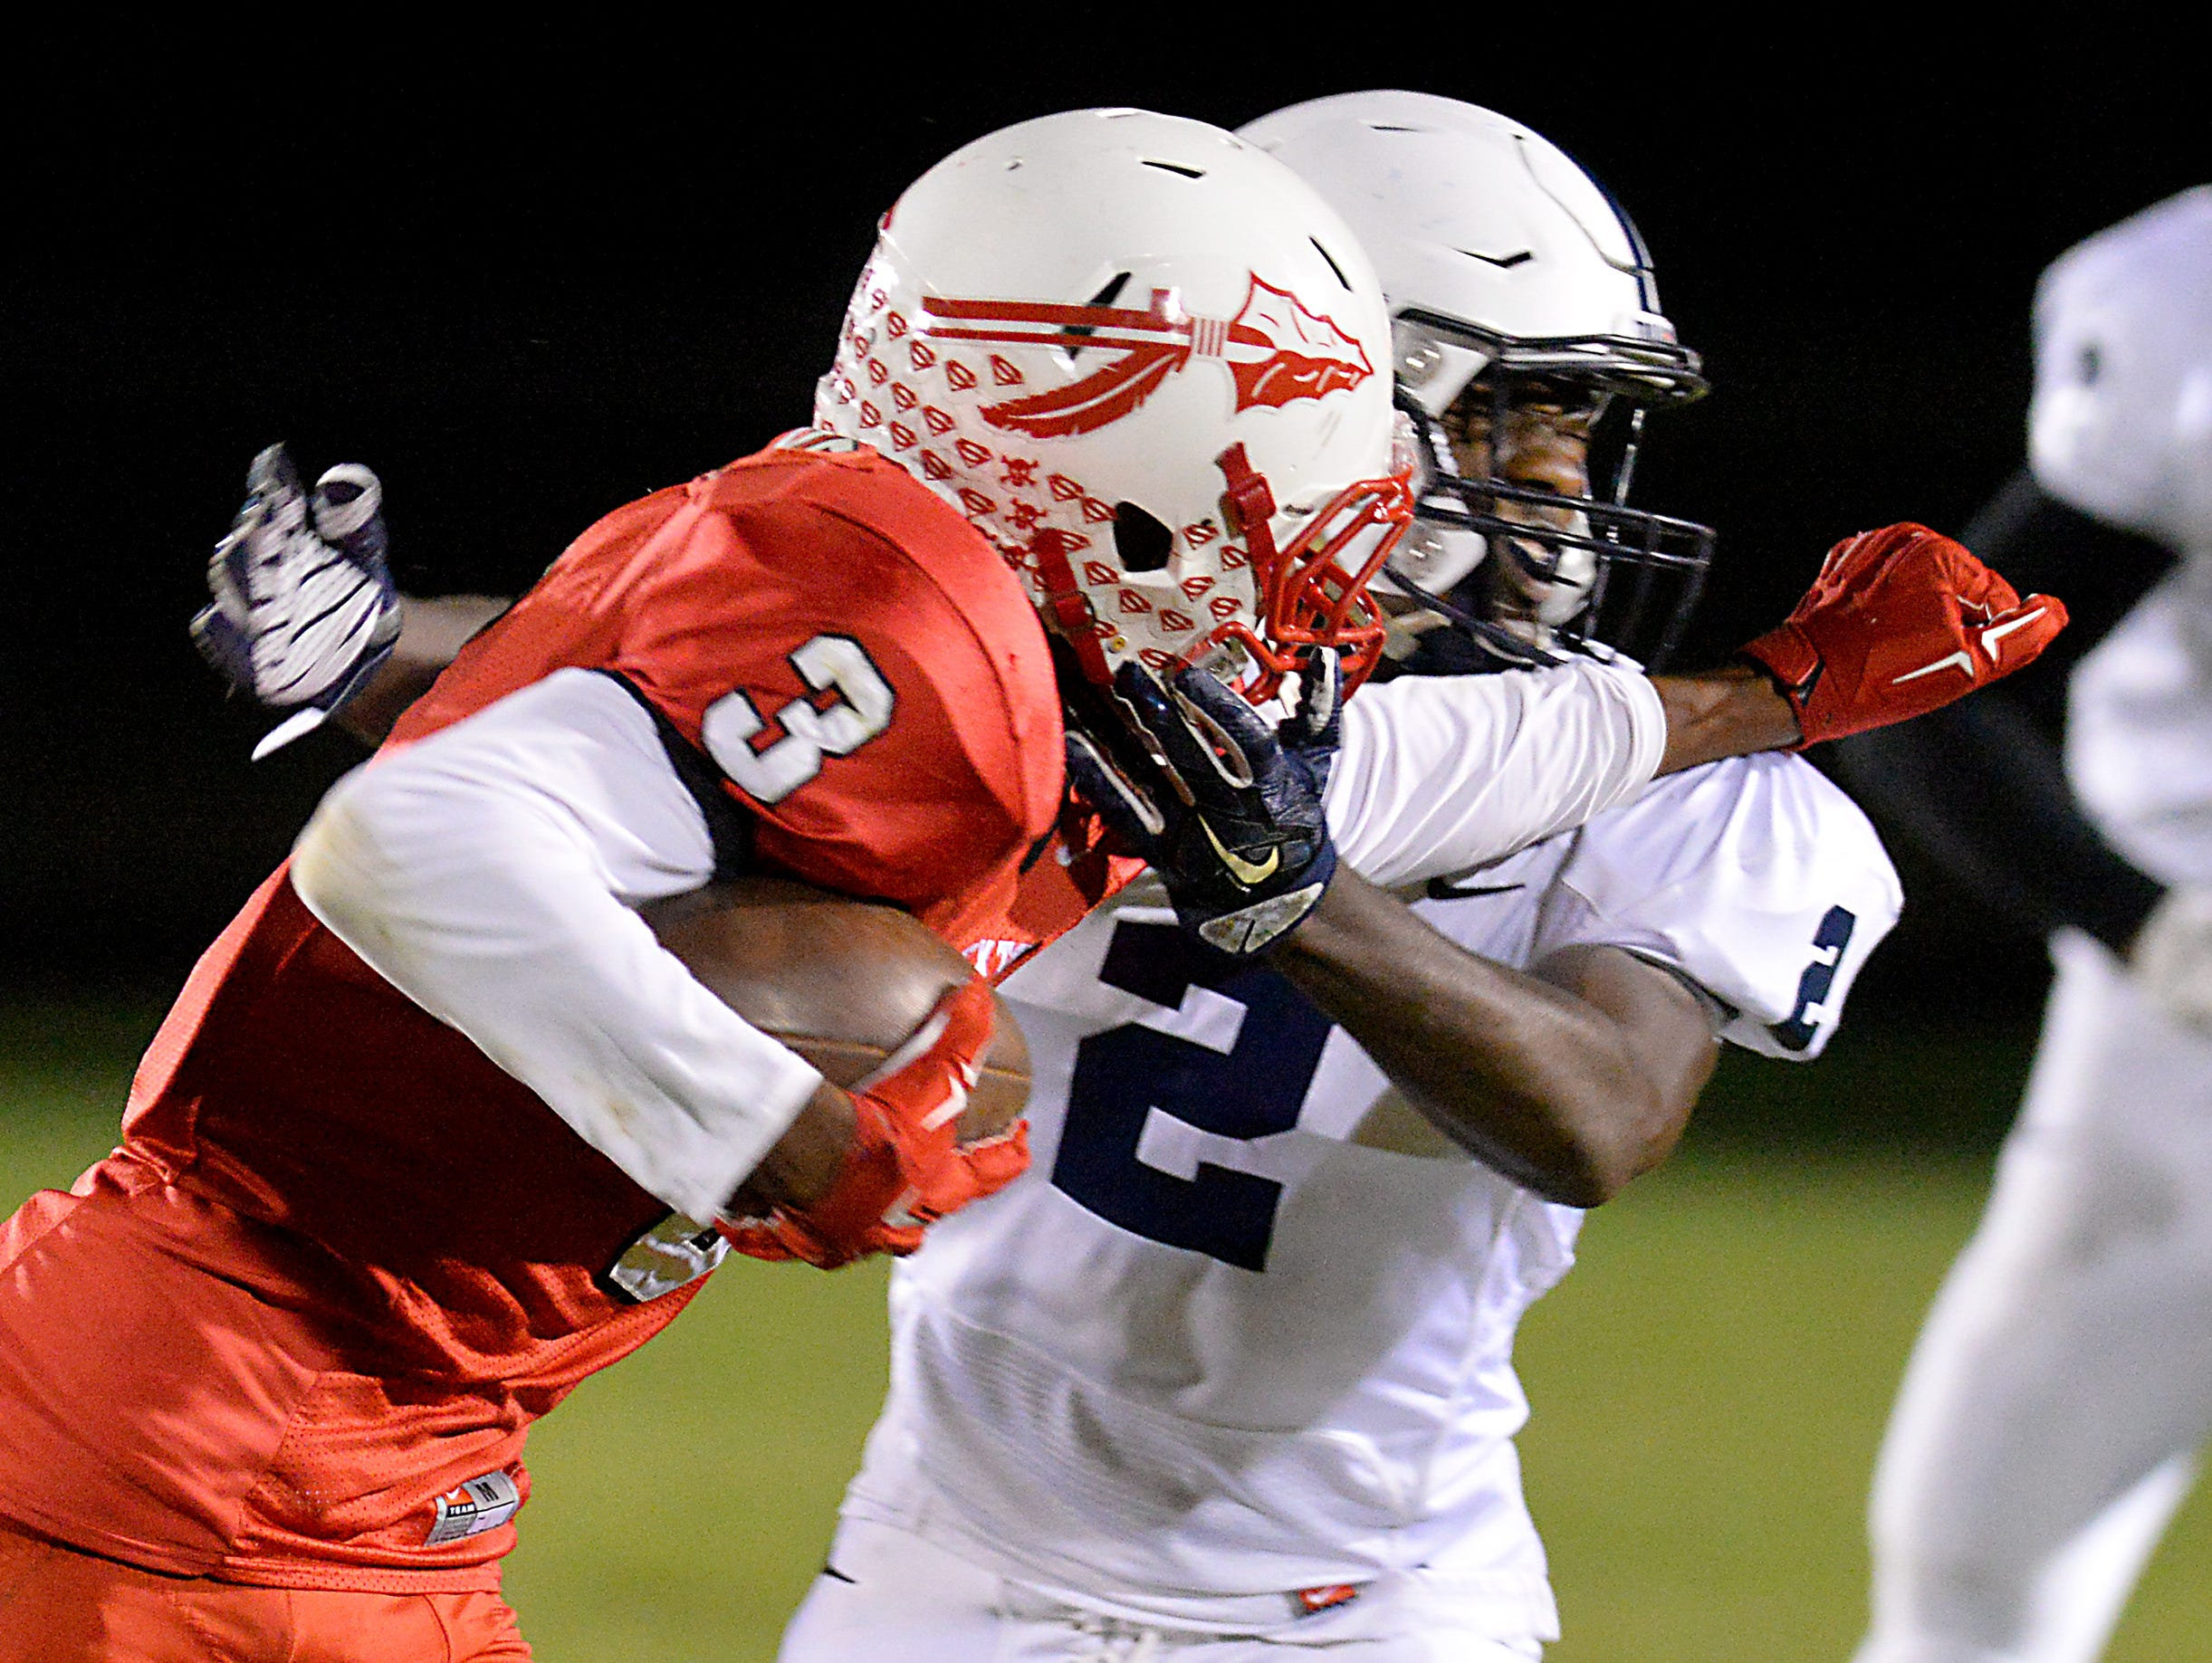 Sexton receiver Devin Taylor stiff arms East Lansing defensive back Kentre Patterson for a first down after a catch at Sexton Friday 10/9/2015.